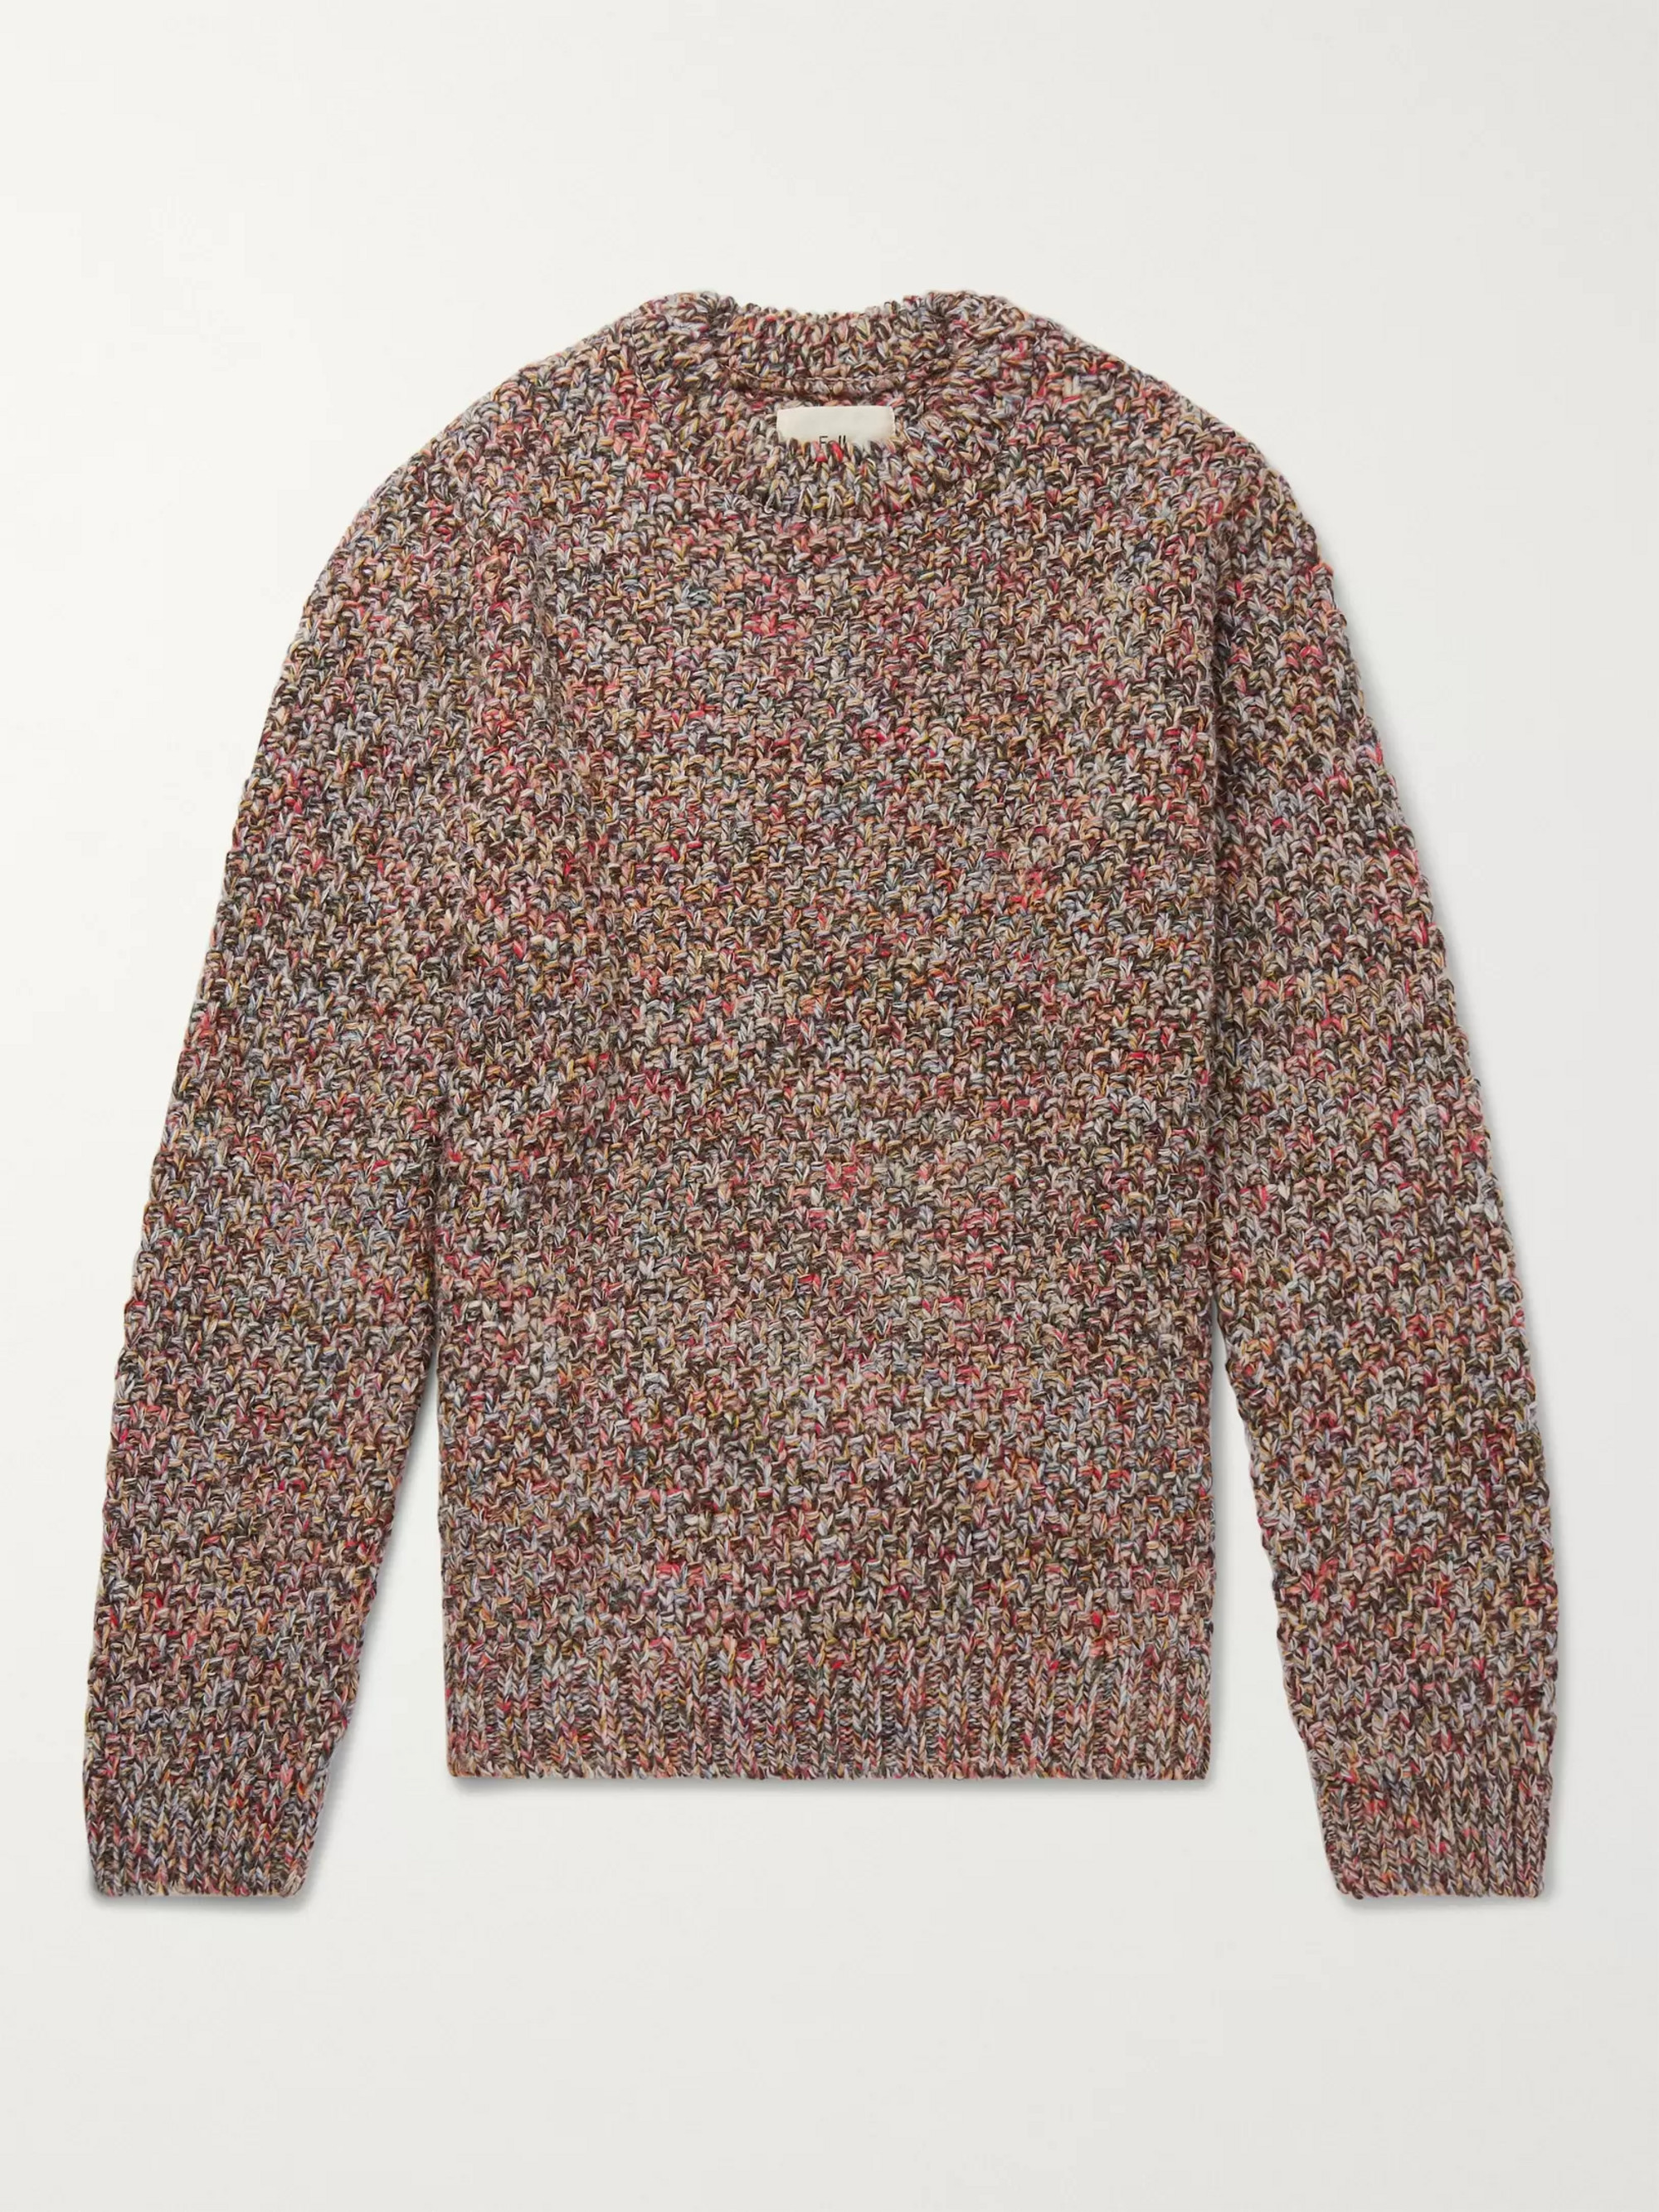 a2f0943dd022b8 Men's Knitwear | Designer Menswear | MR PORTER